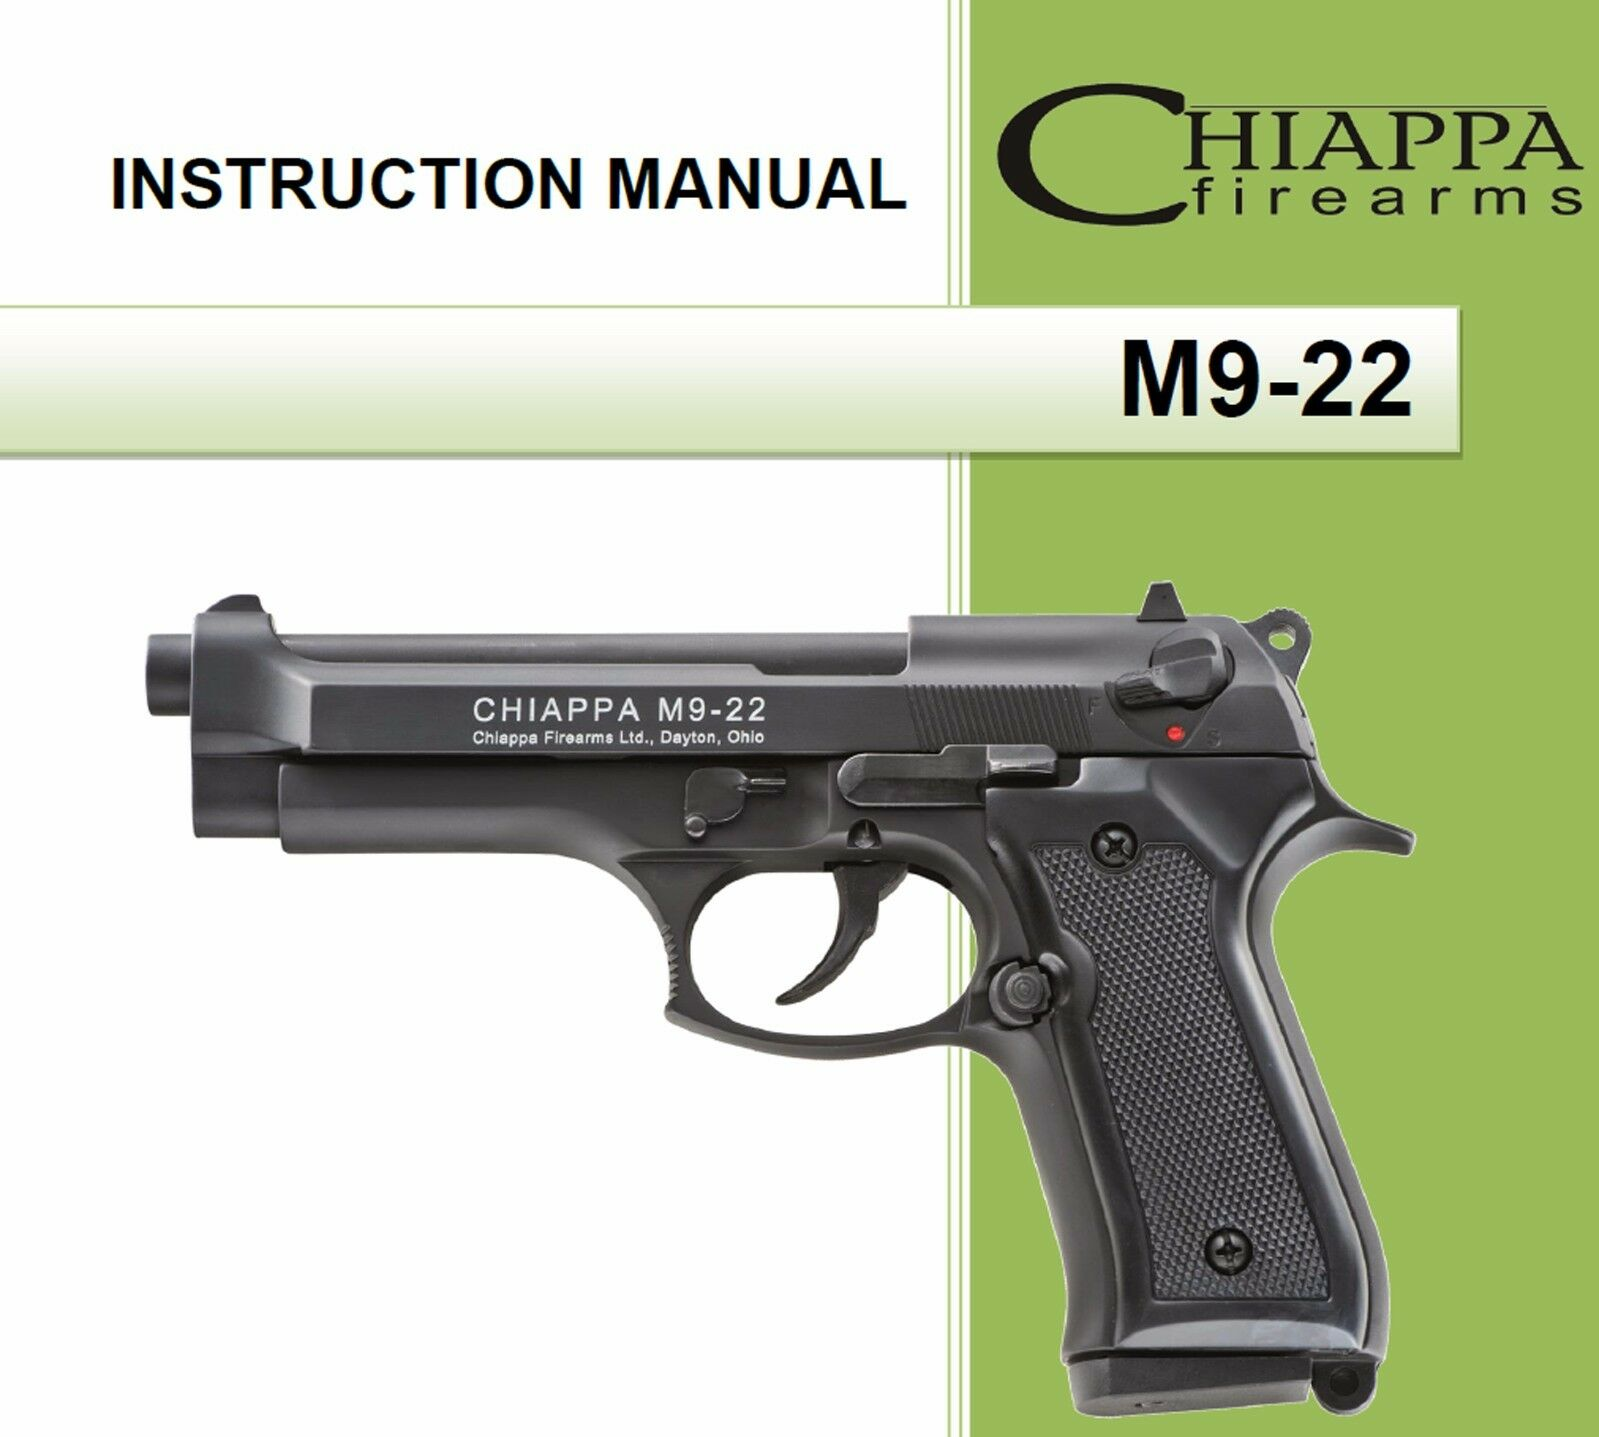 chiappa m9 22 pistol owners instruction and maintenance manual m9 22 rh picclick com Walther P99 Walther PPK